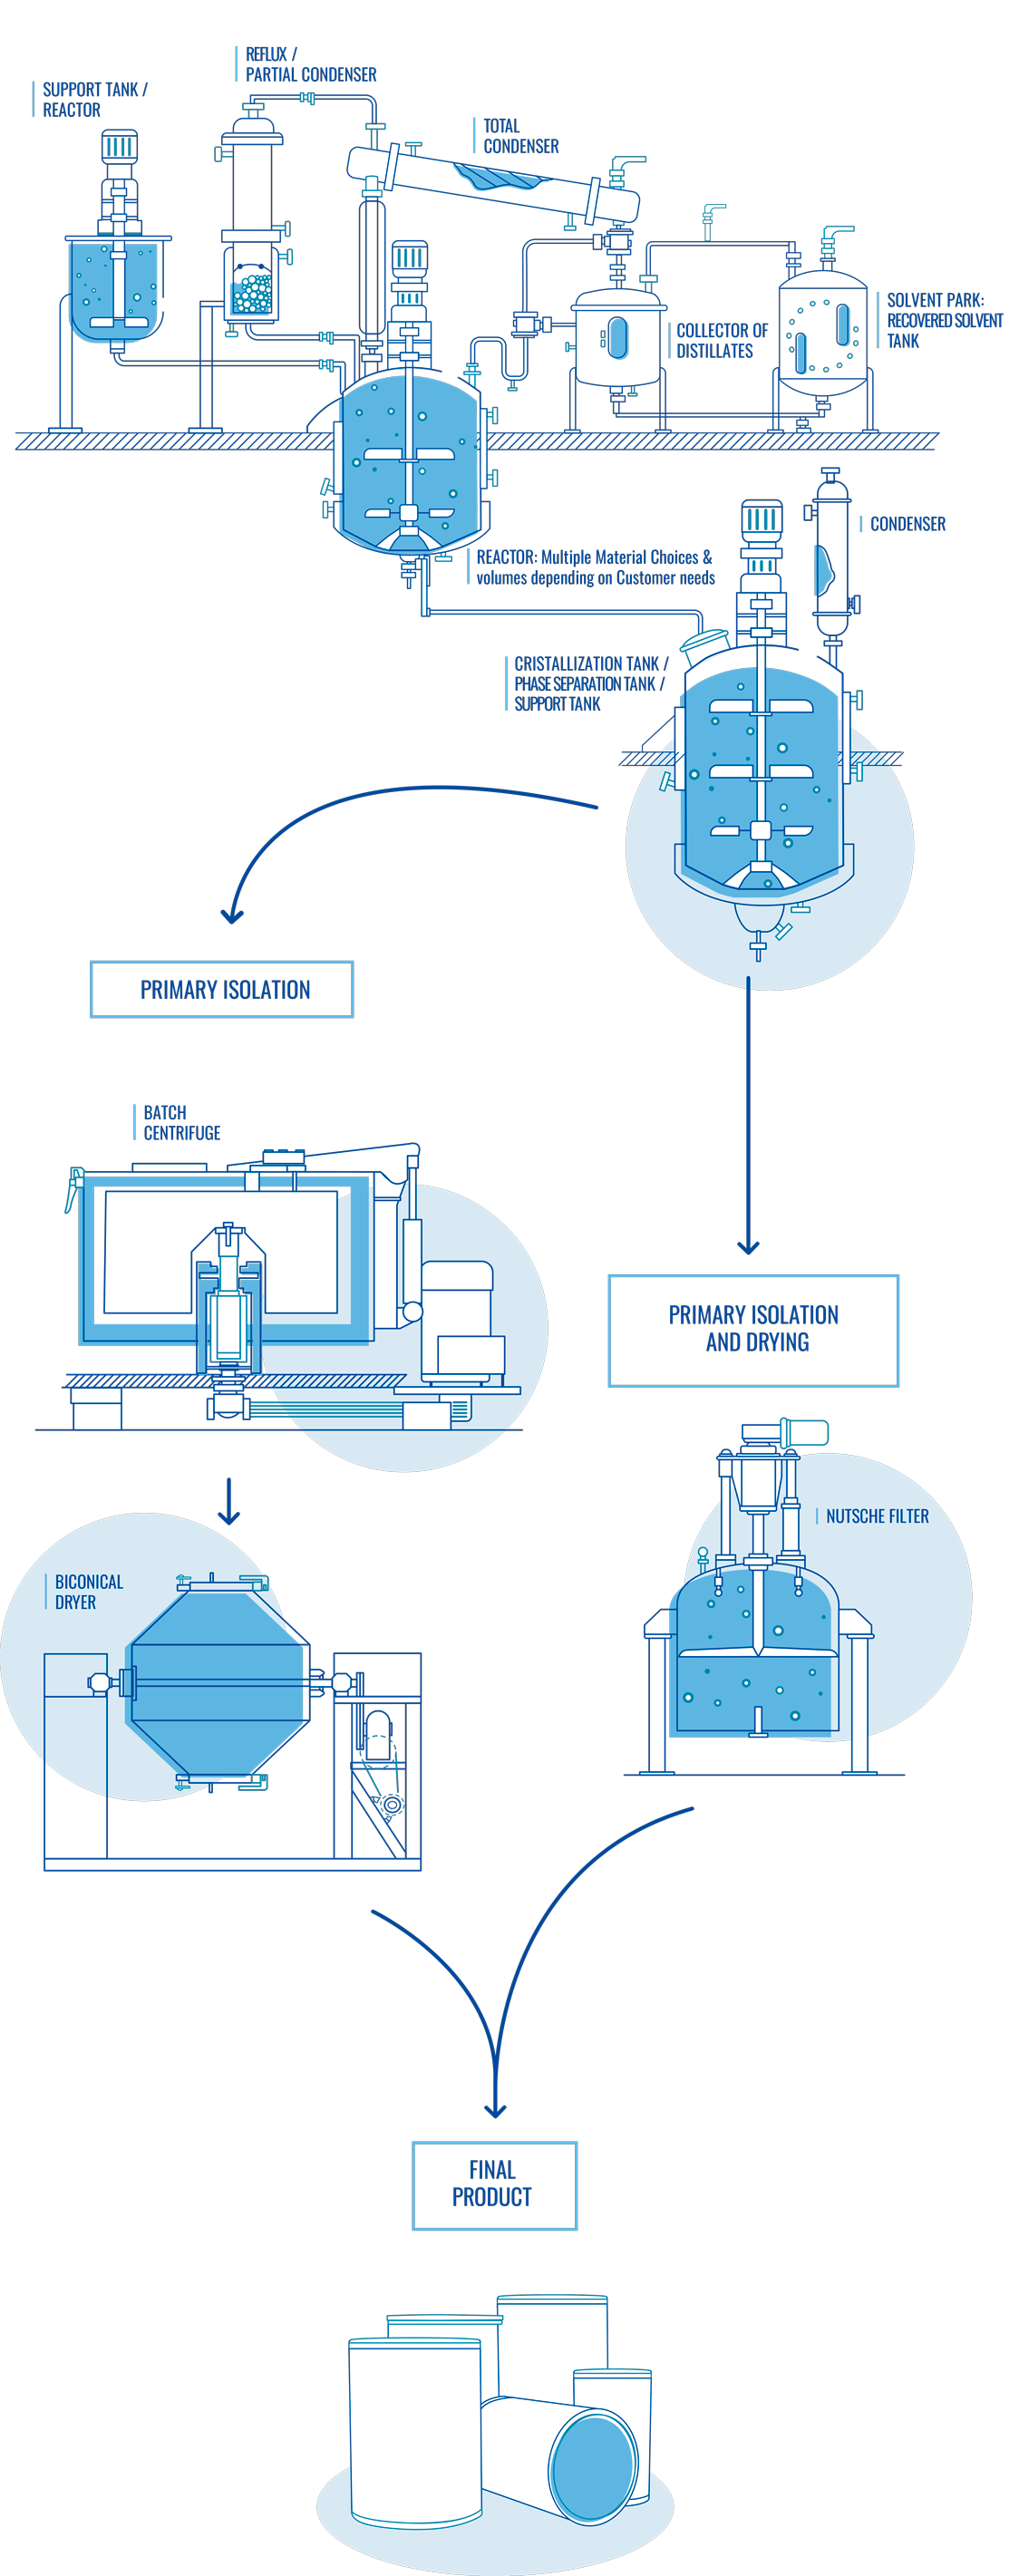 Synthesis infography